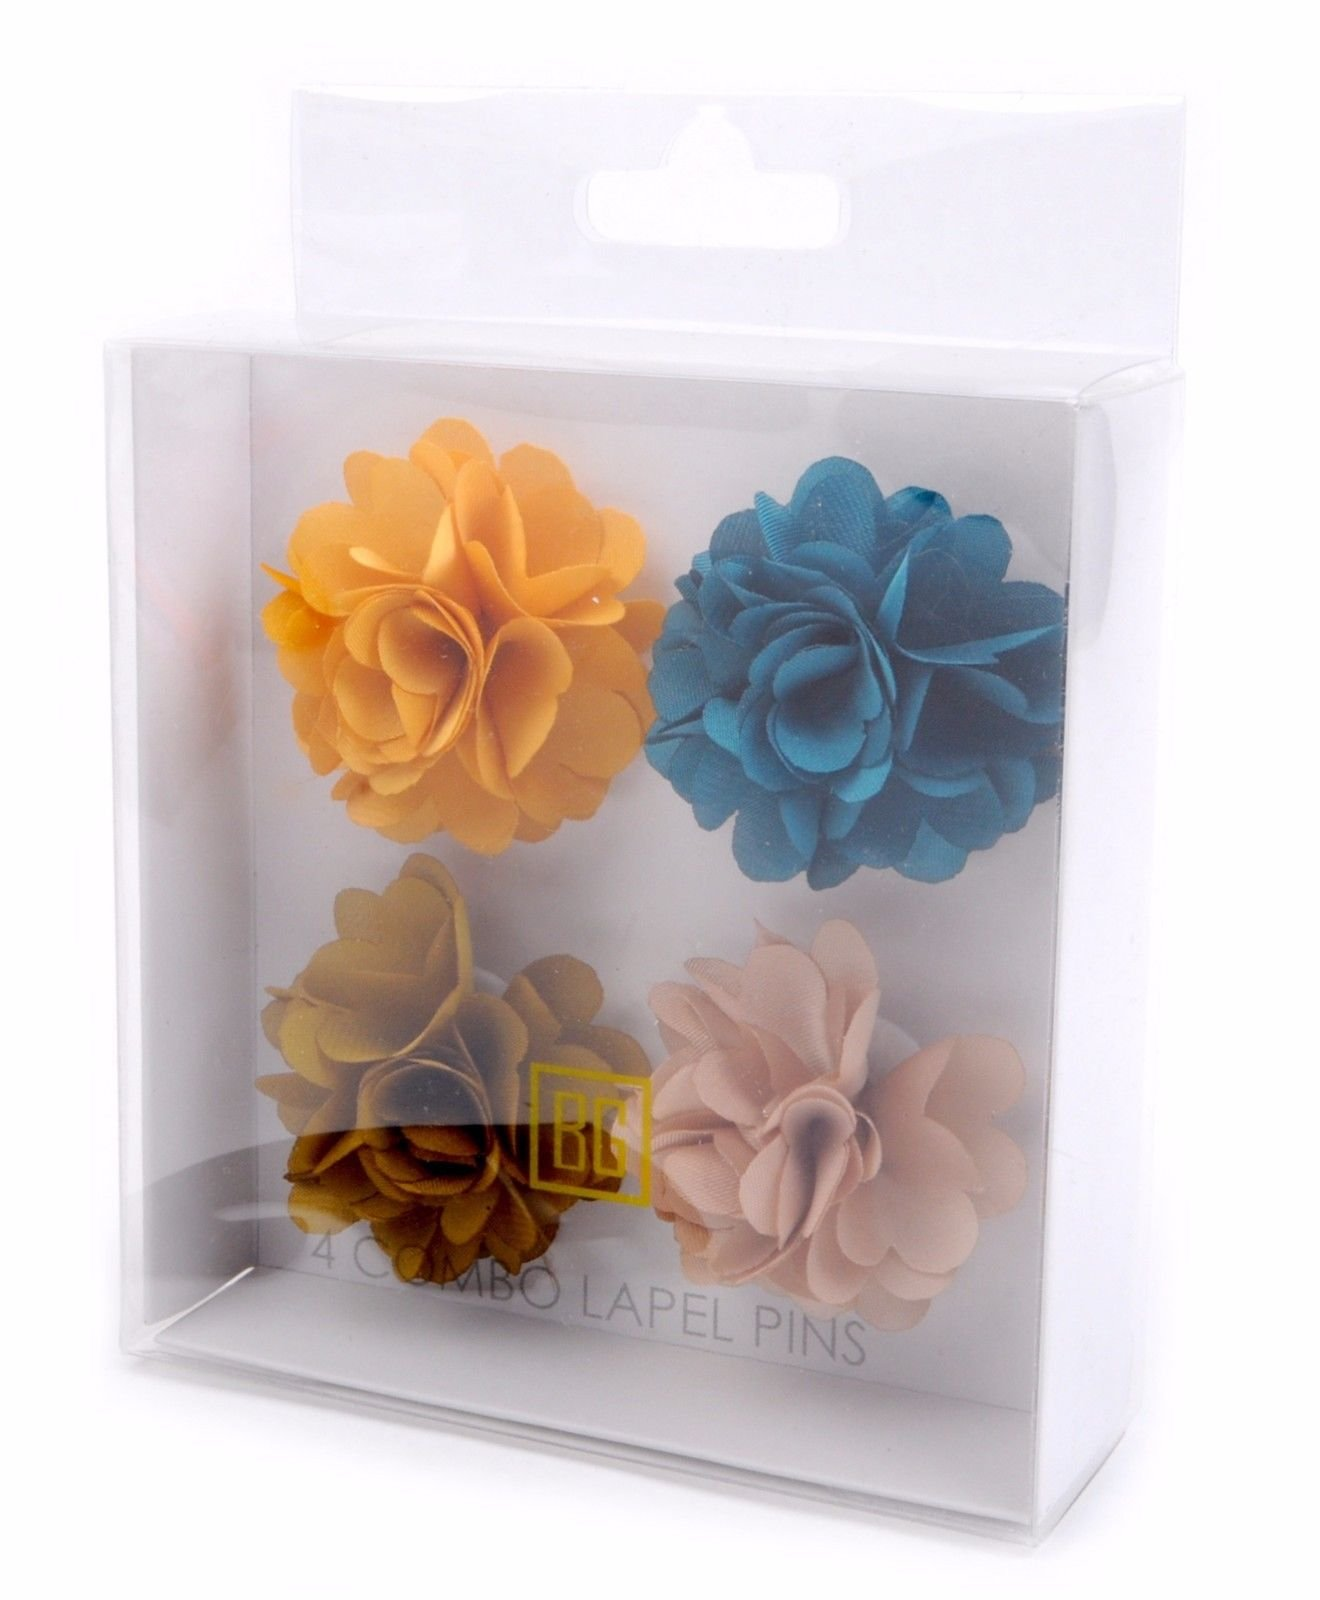 BG-Mini-Bouquet-Clutch-Back-Flower-Tuxedo-Suit-Lapel-Pins-Boutonniere-4-Pack-Set thumbnail 18